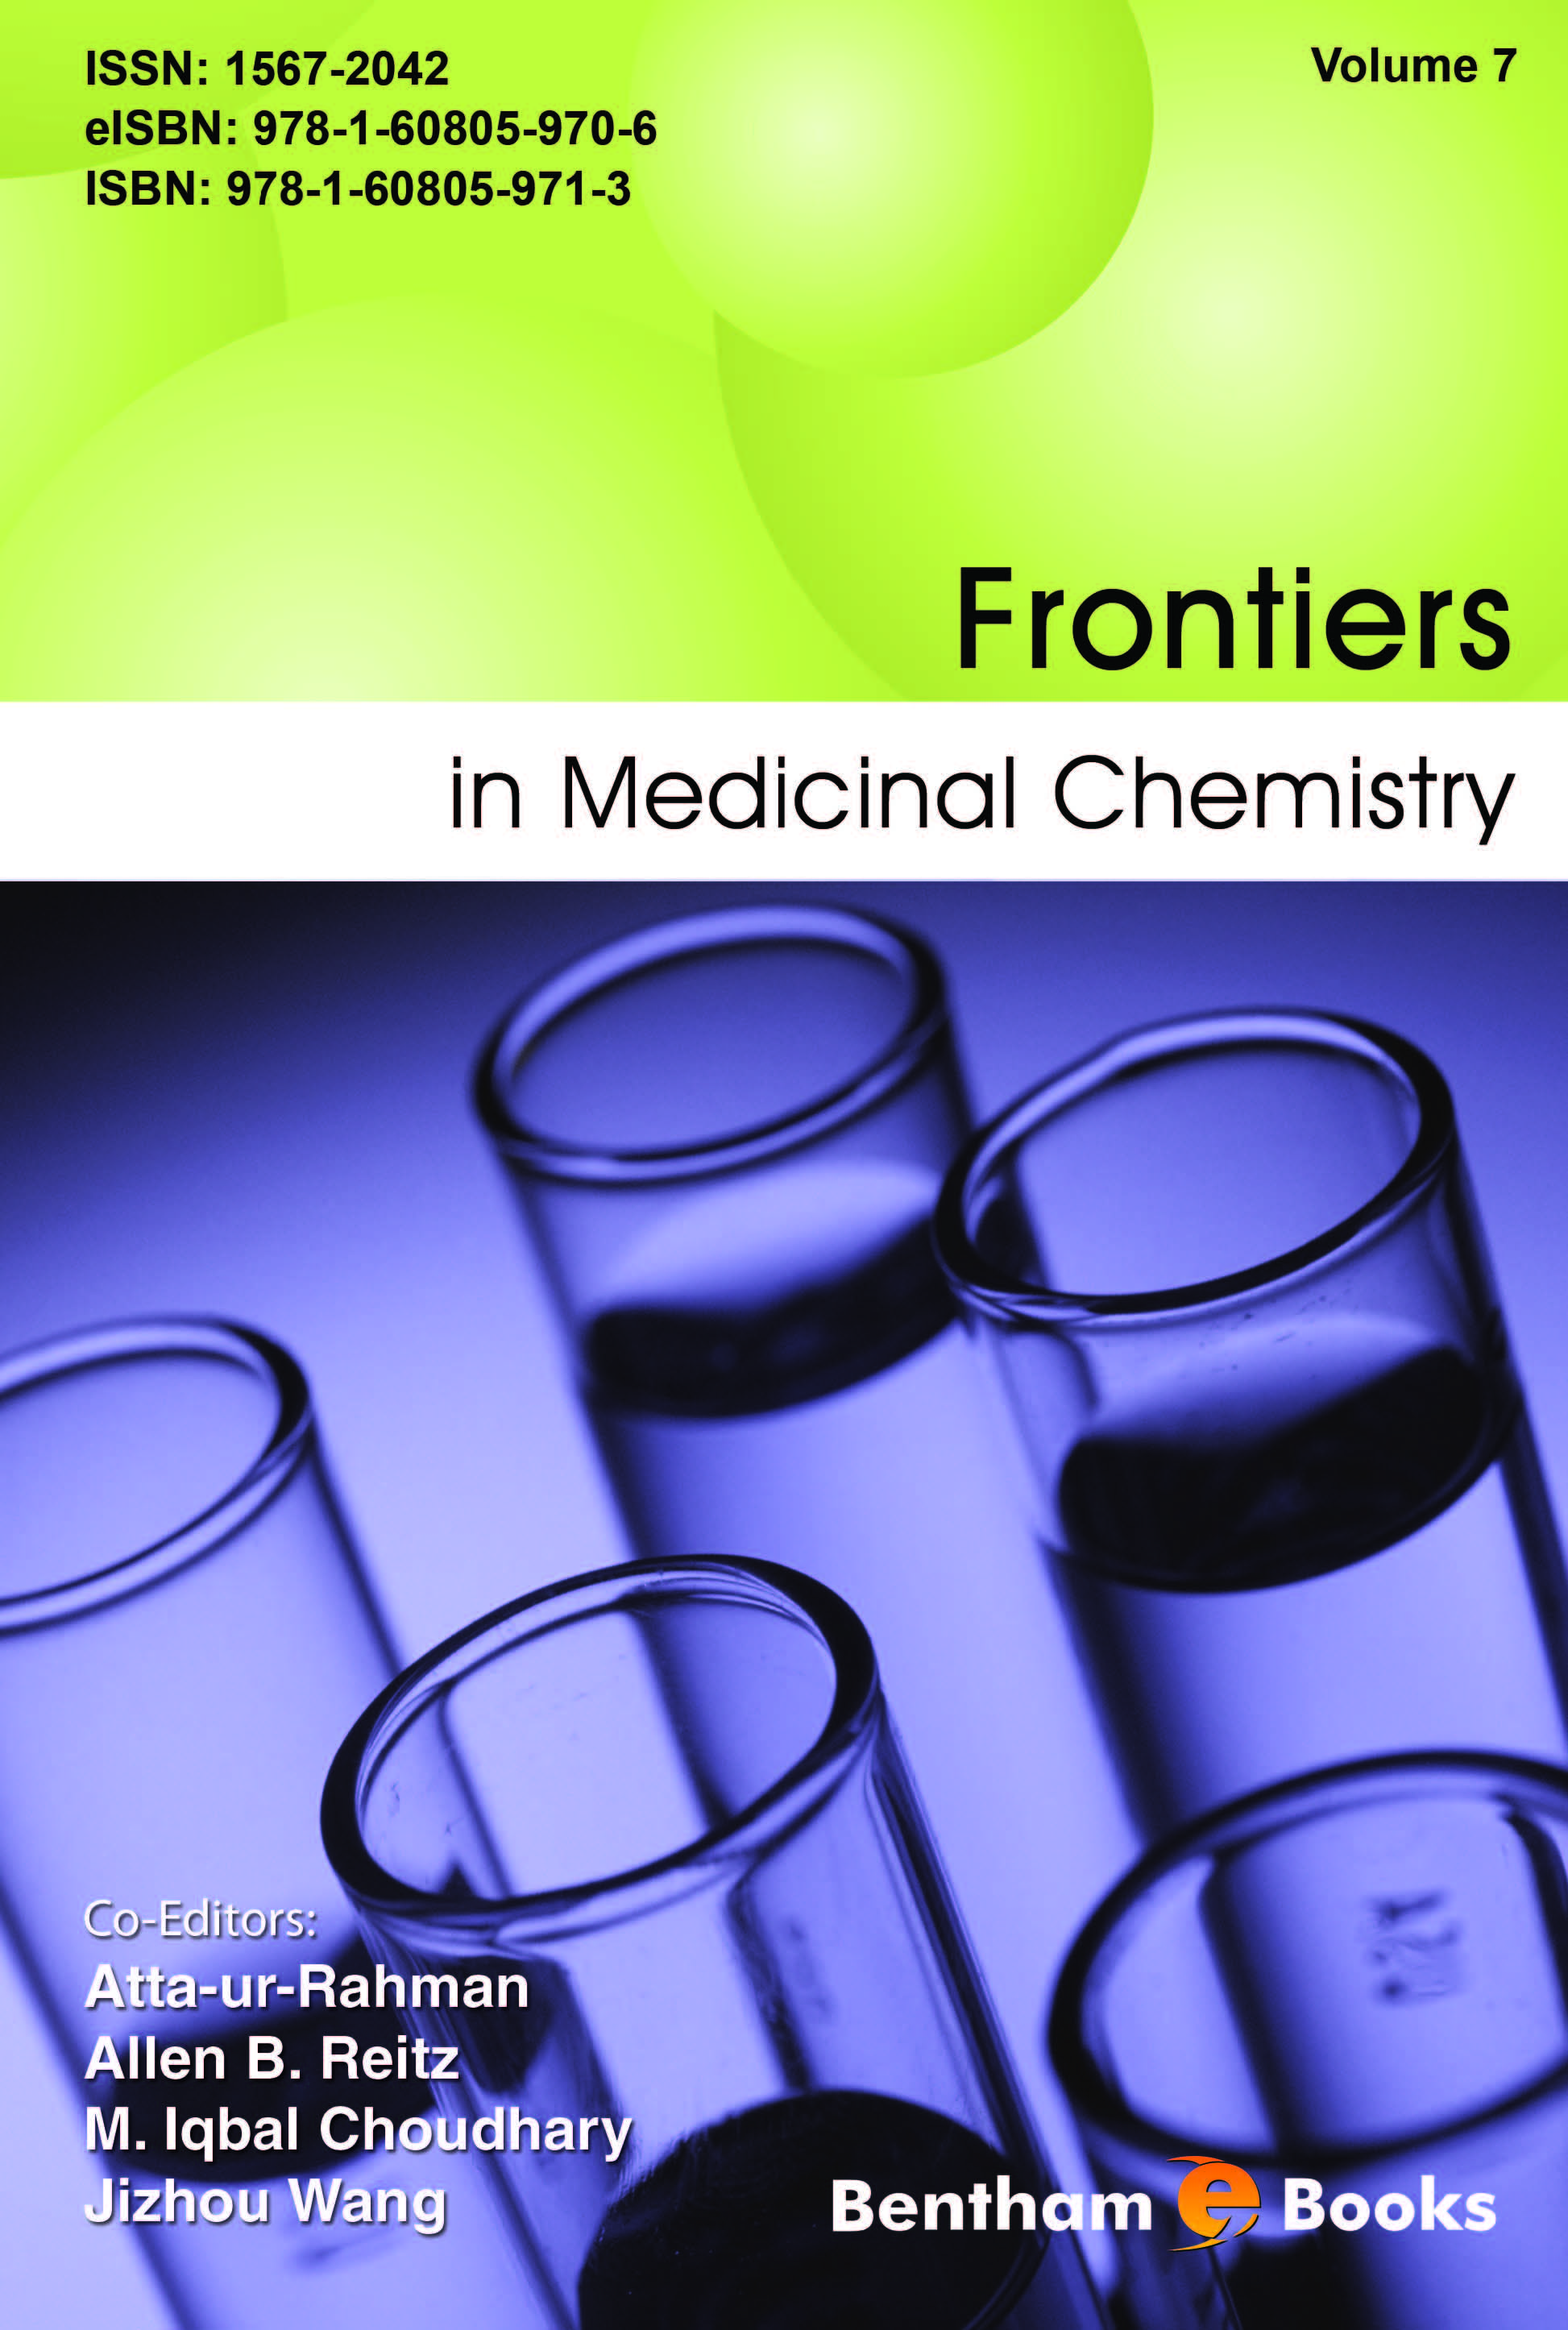 Frontiers in Medicinal Chemistry